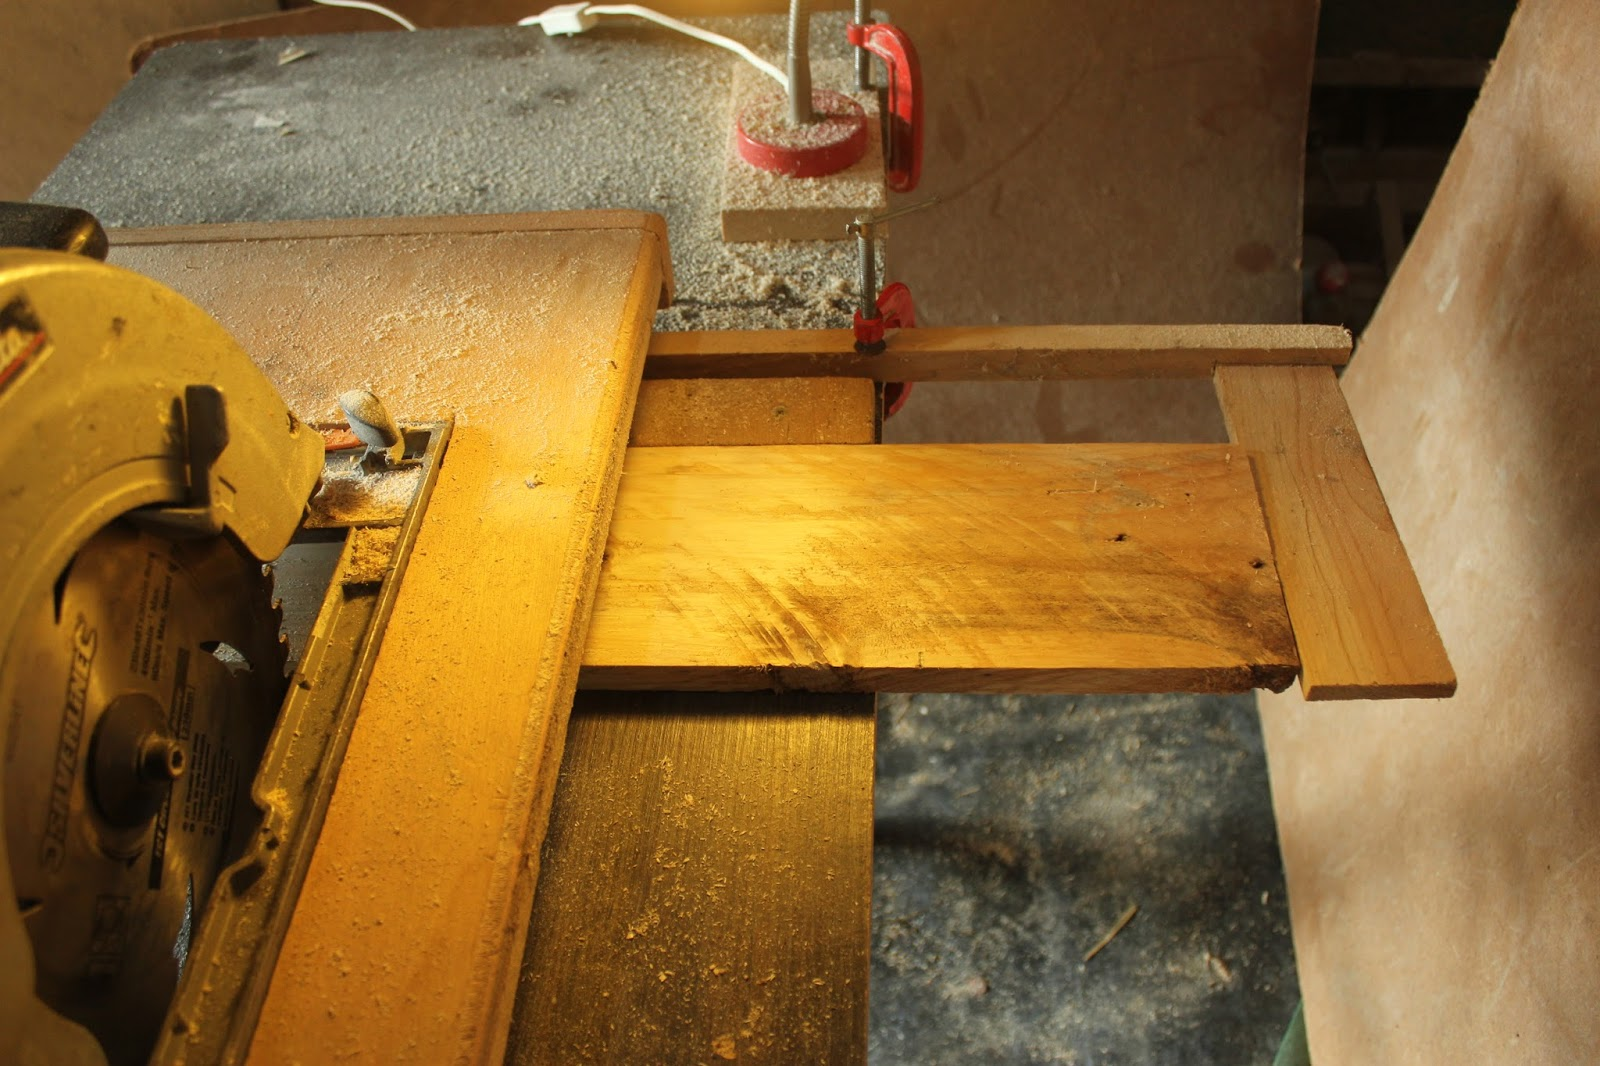 Another saw stop design for crosscut saw table